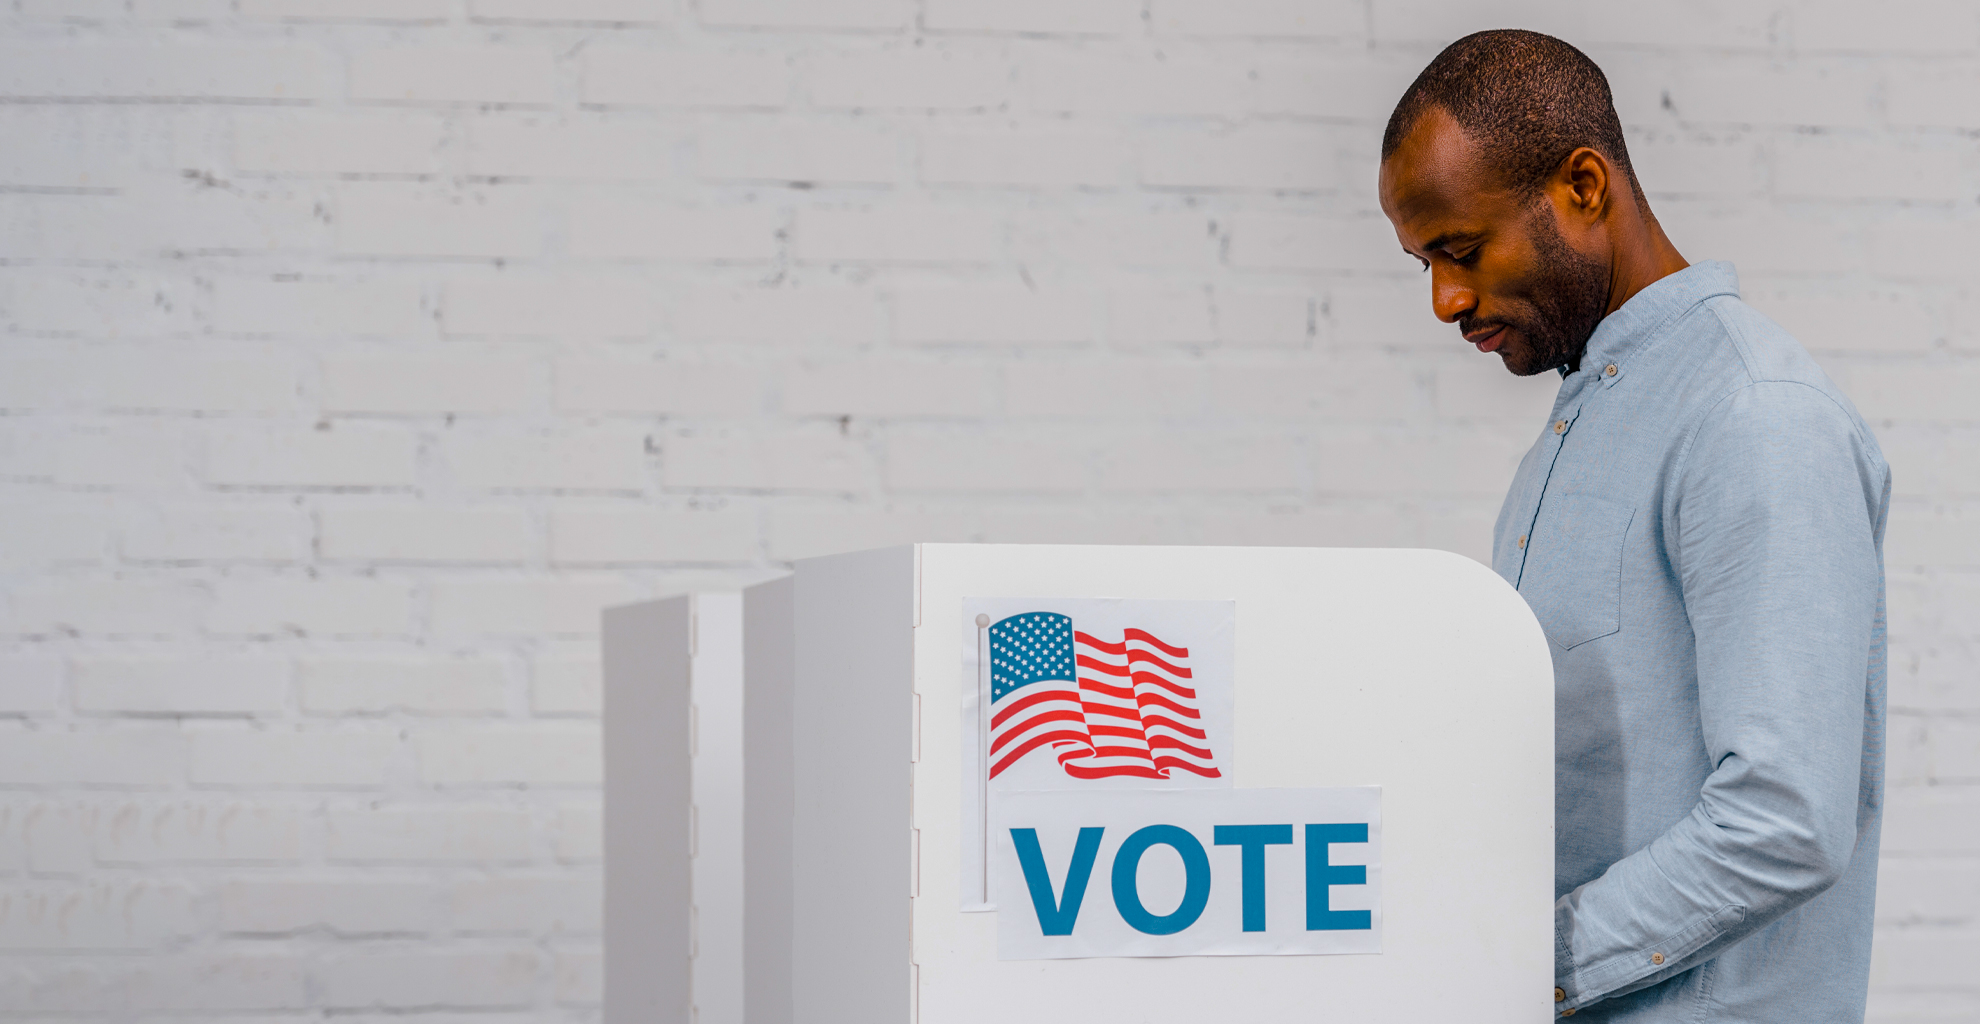 Man voting at a voting booth